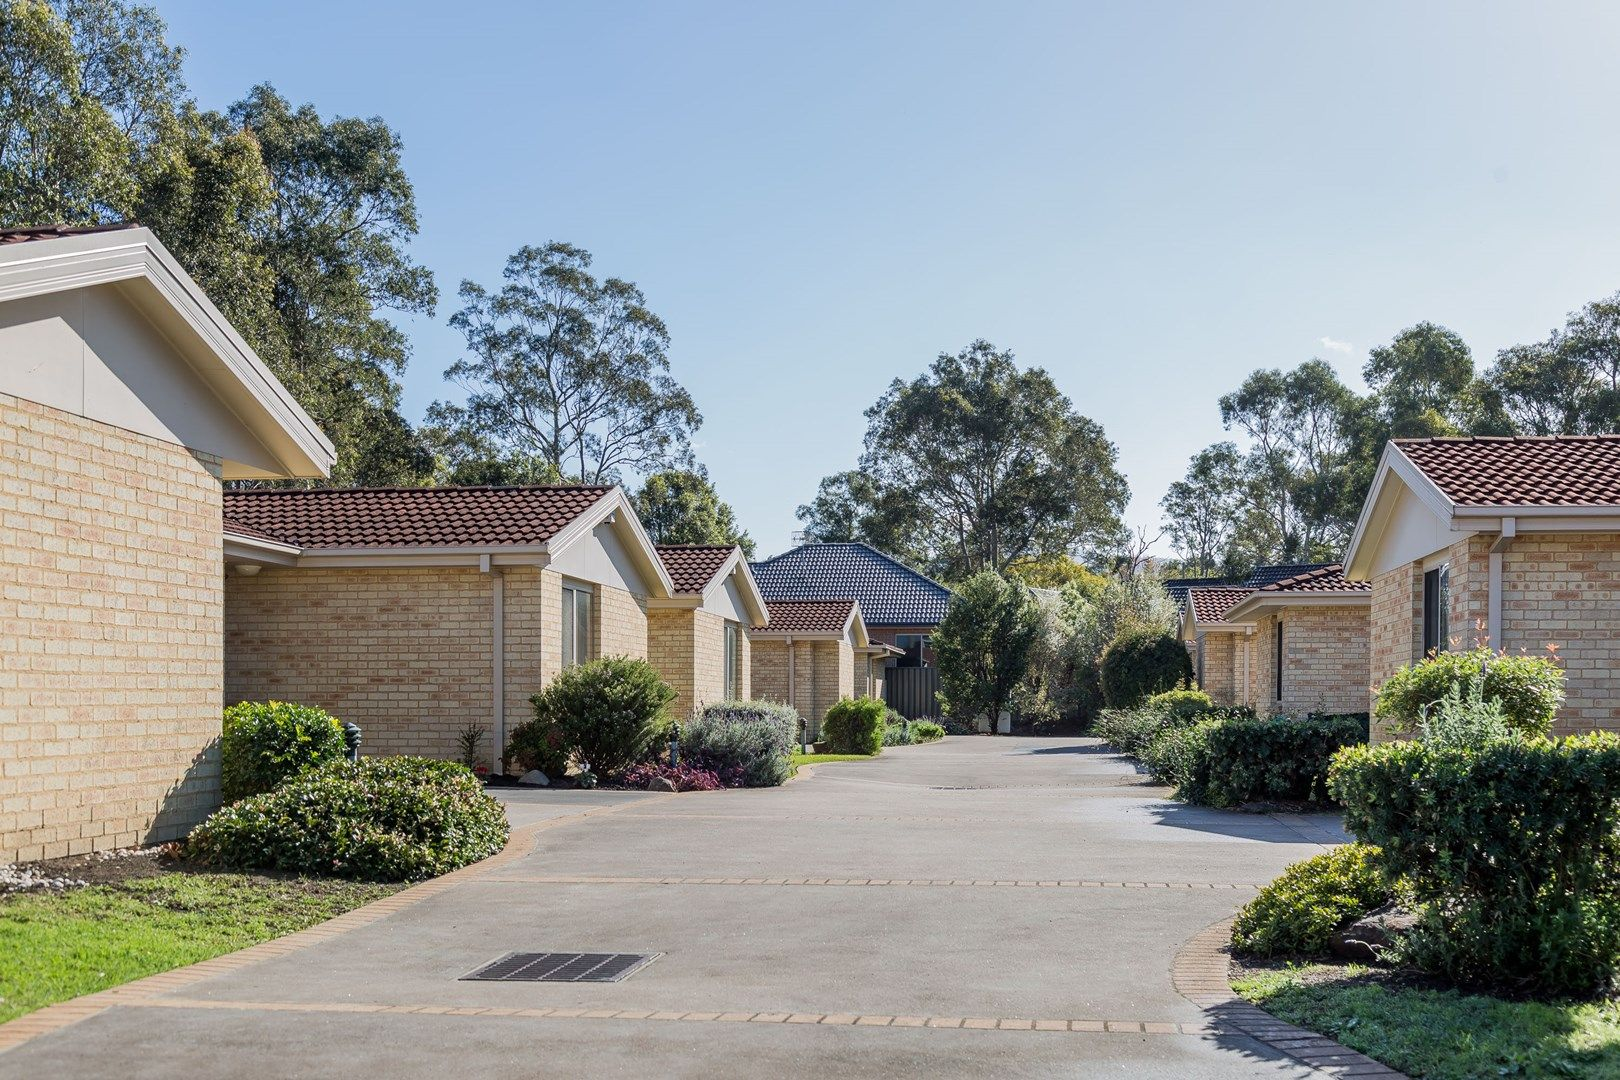 2/22 Mattes Way, Bomaderry NSW 2541, Image 2